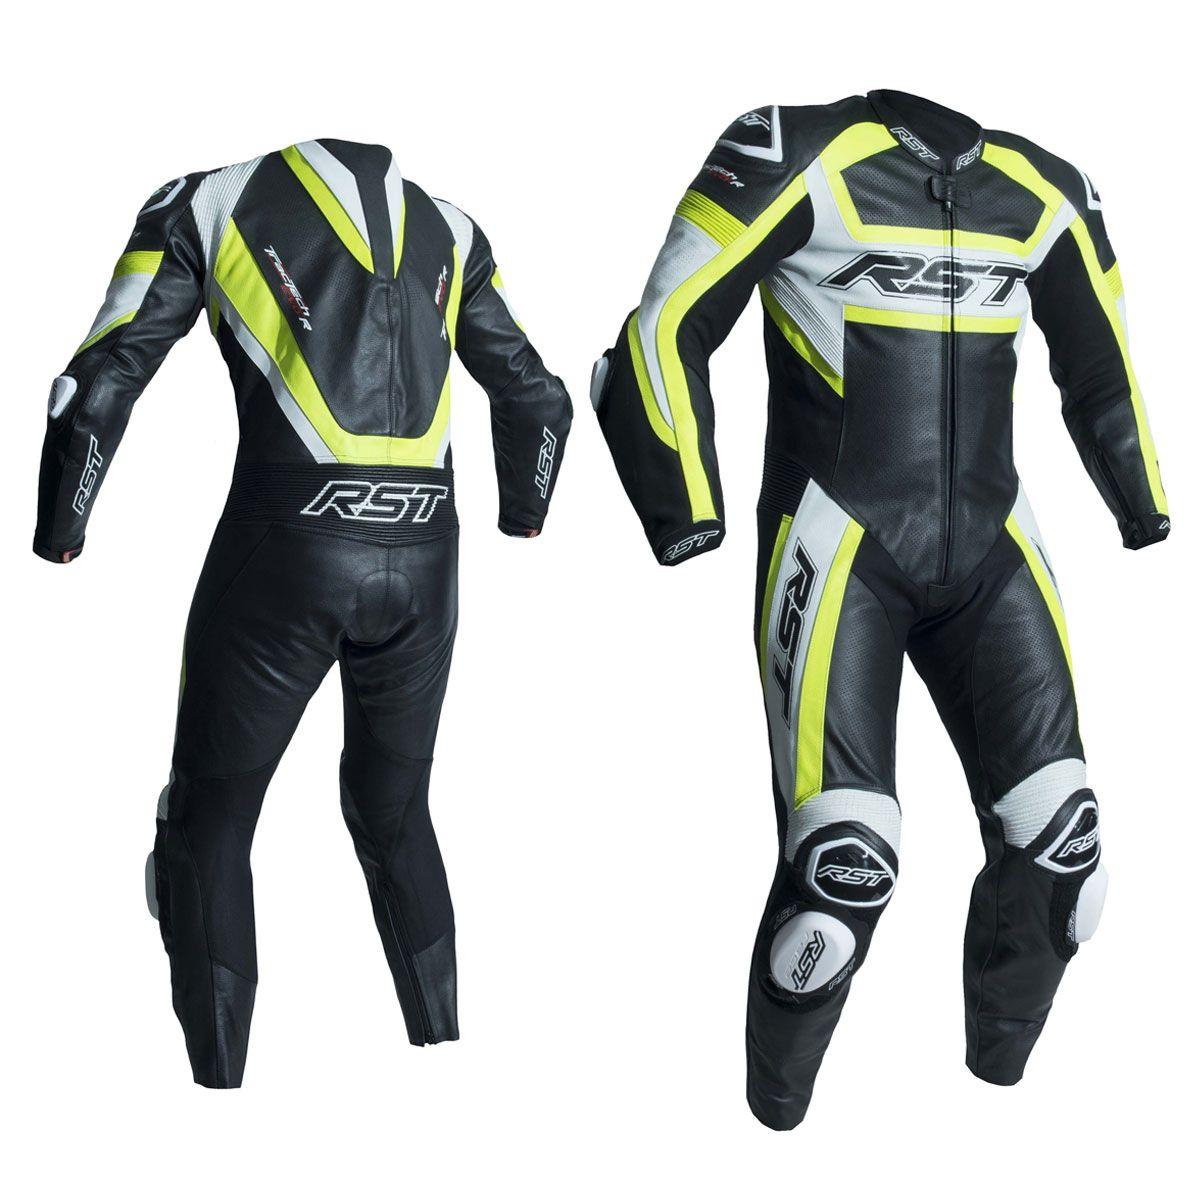 RST Tractech Evo R CE One Piece Leather Suit Black / Fluo Yellow